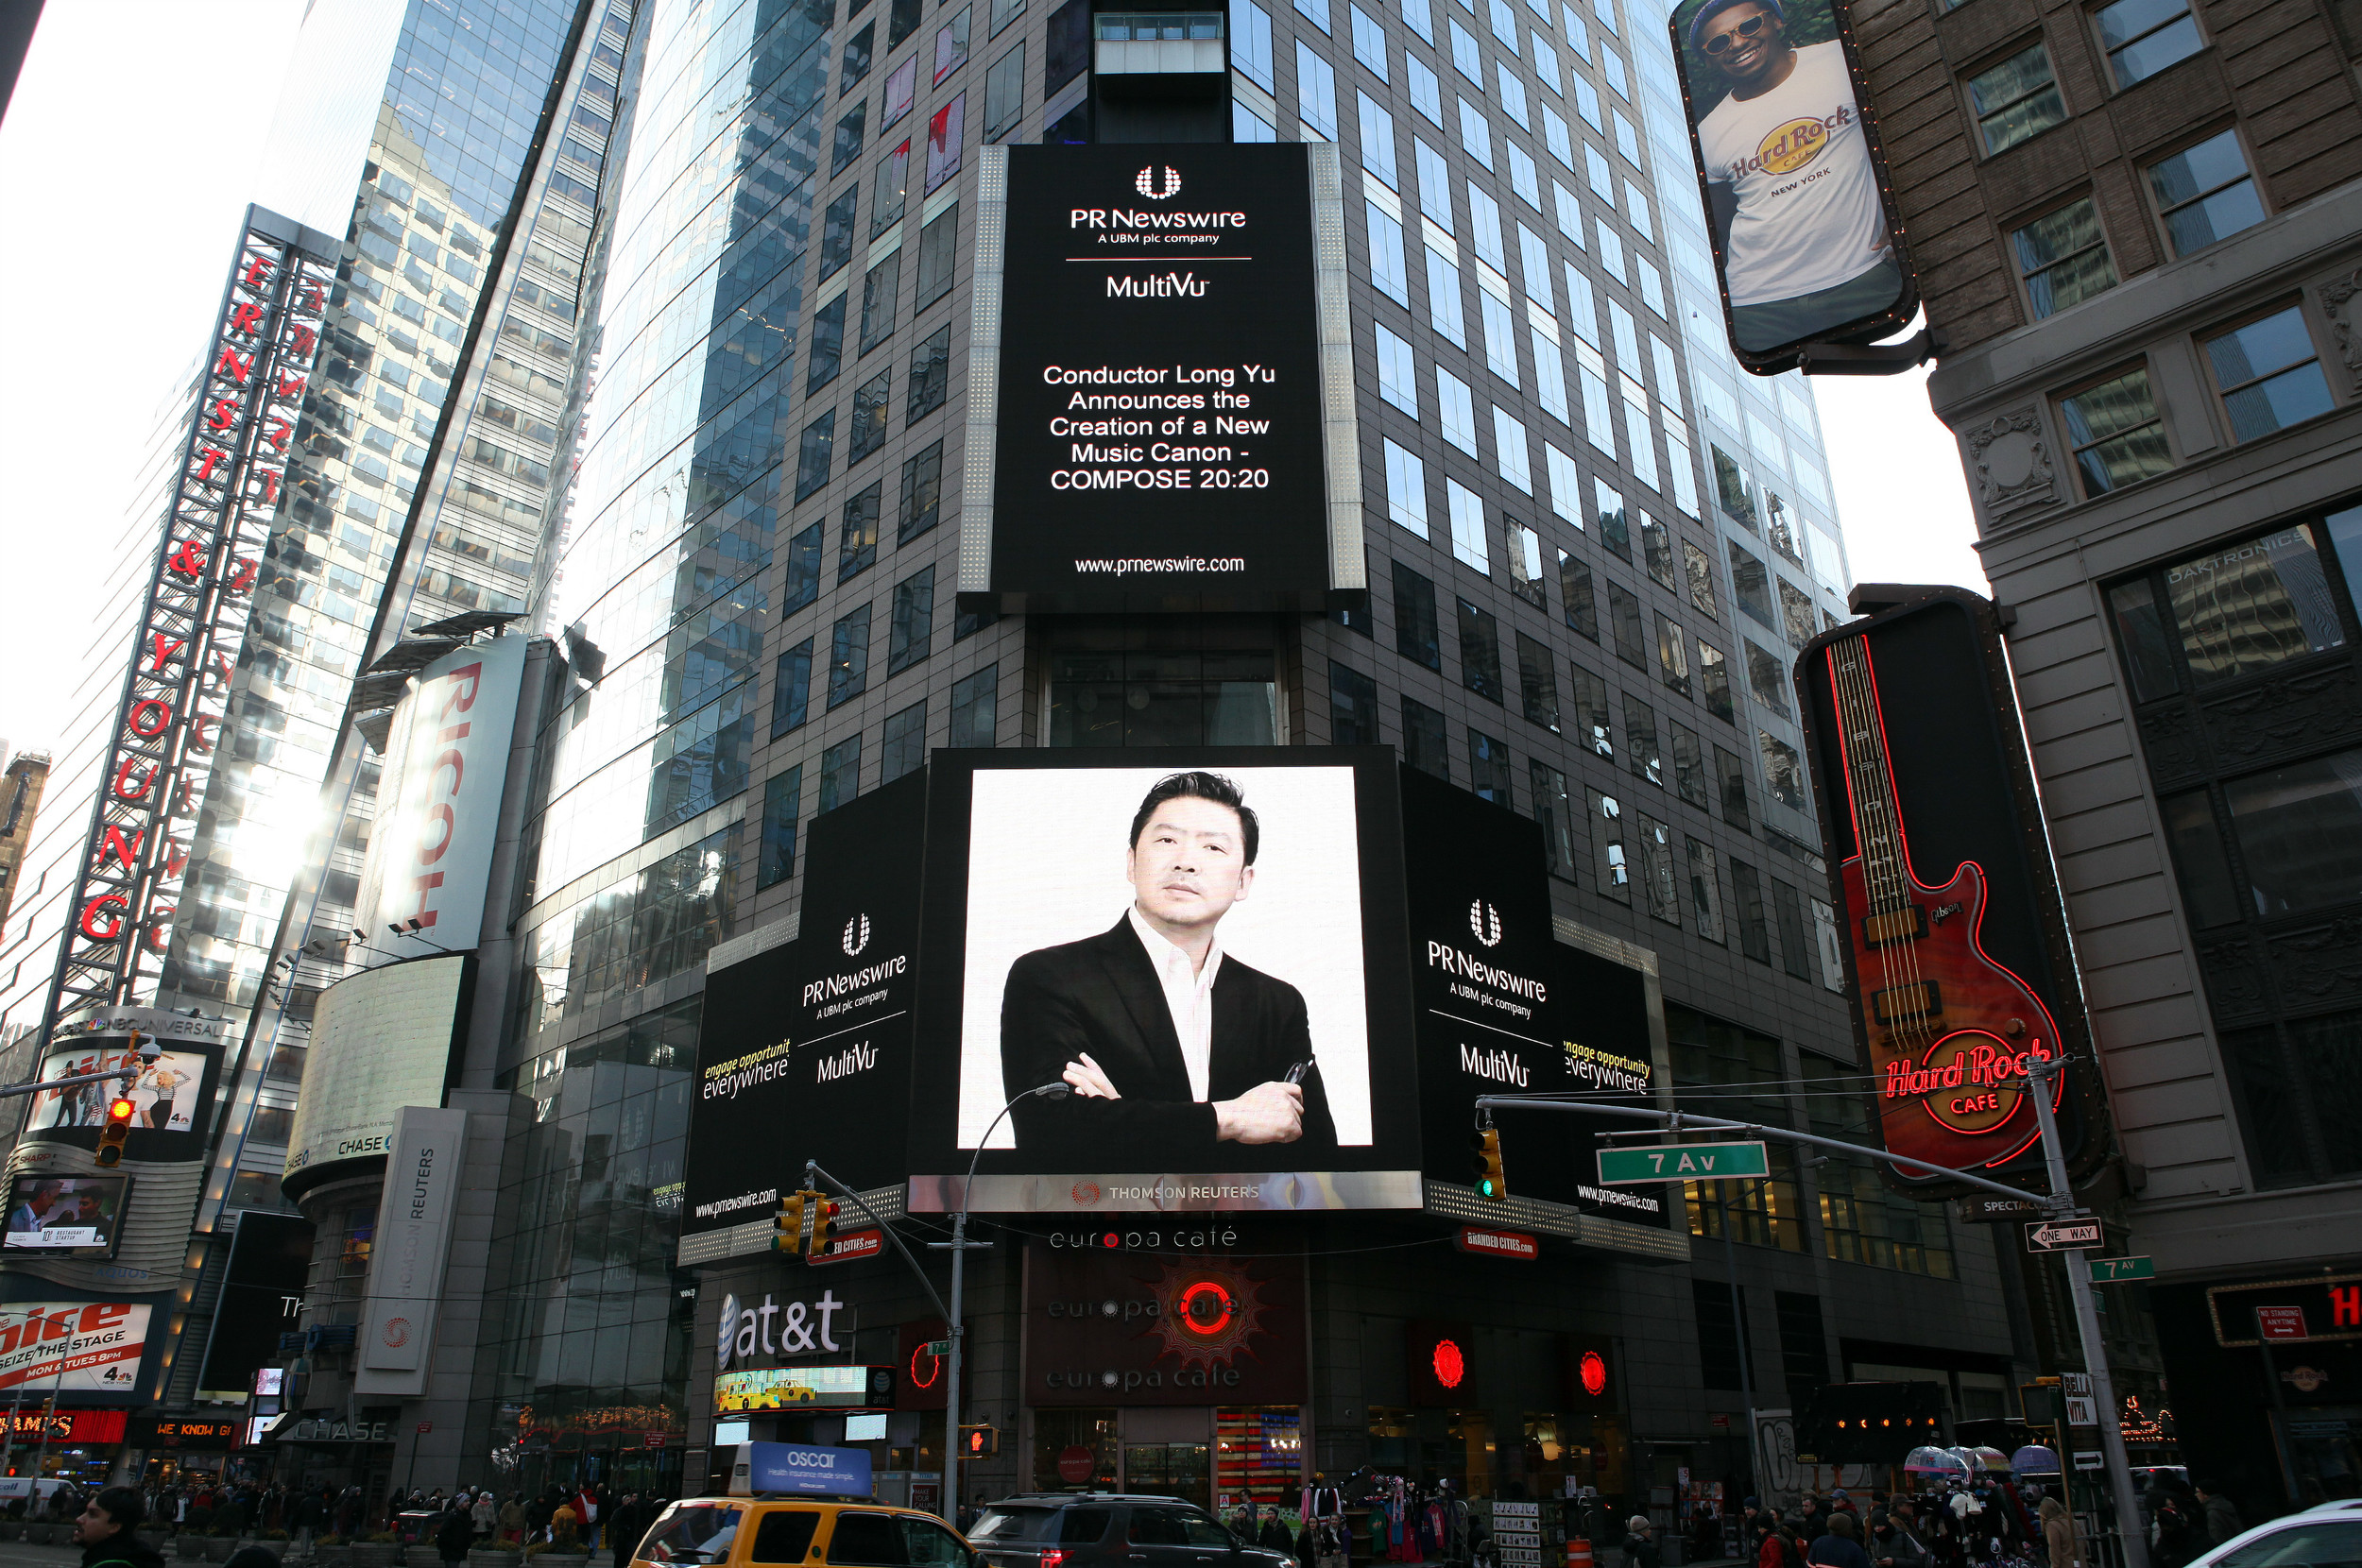 Long Yu's COMPOSE 20:20 Initiative Featured in New York's Times Square